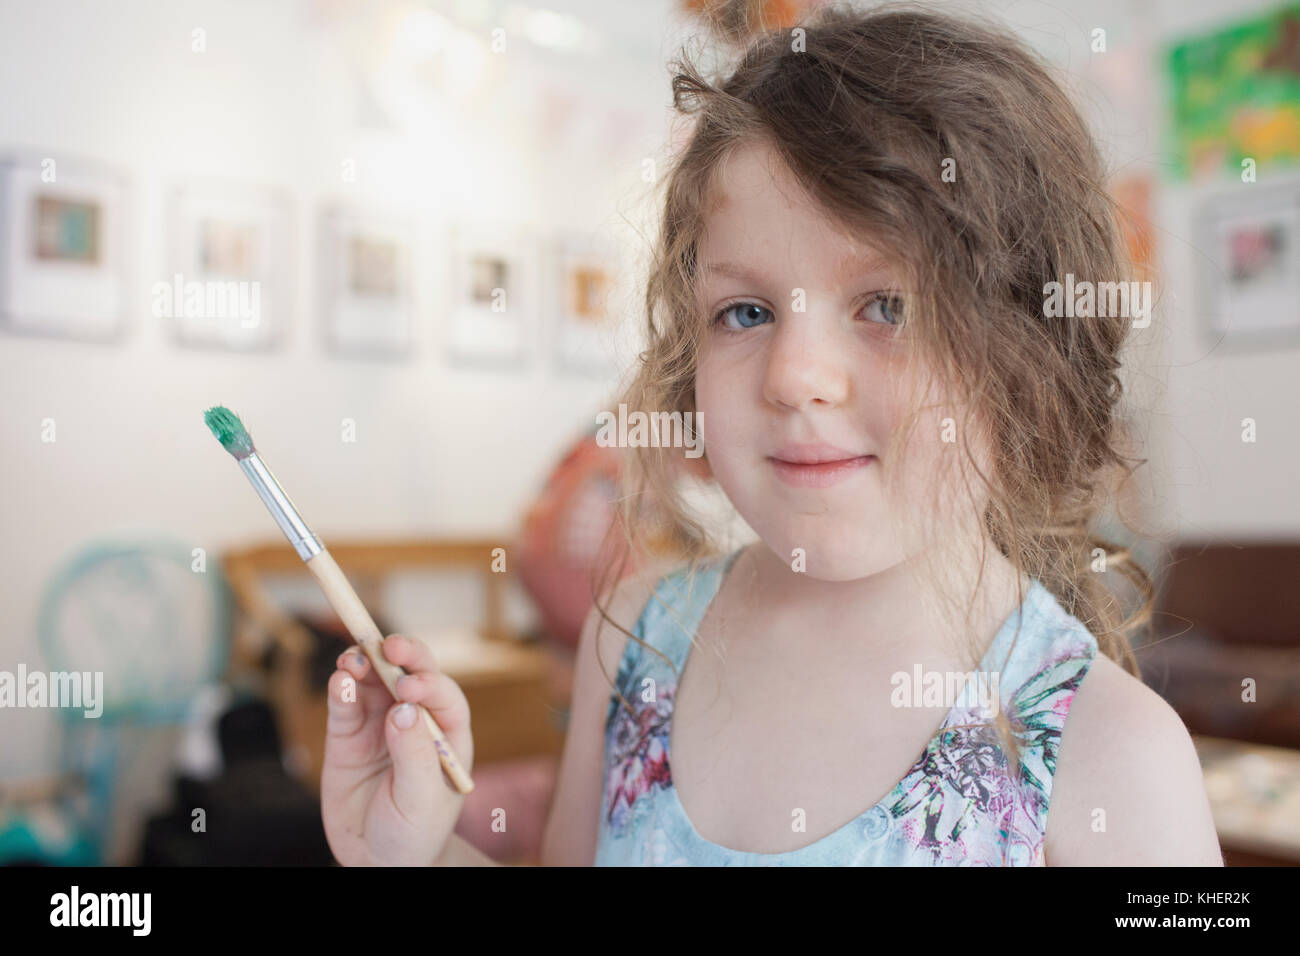 A girl holding a paintbrush - Stock Image